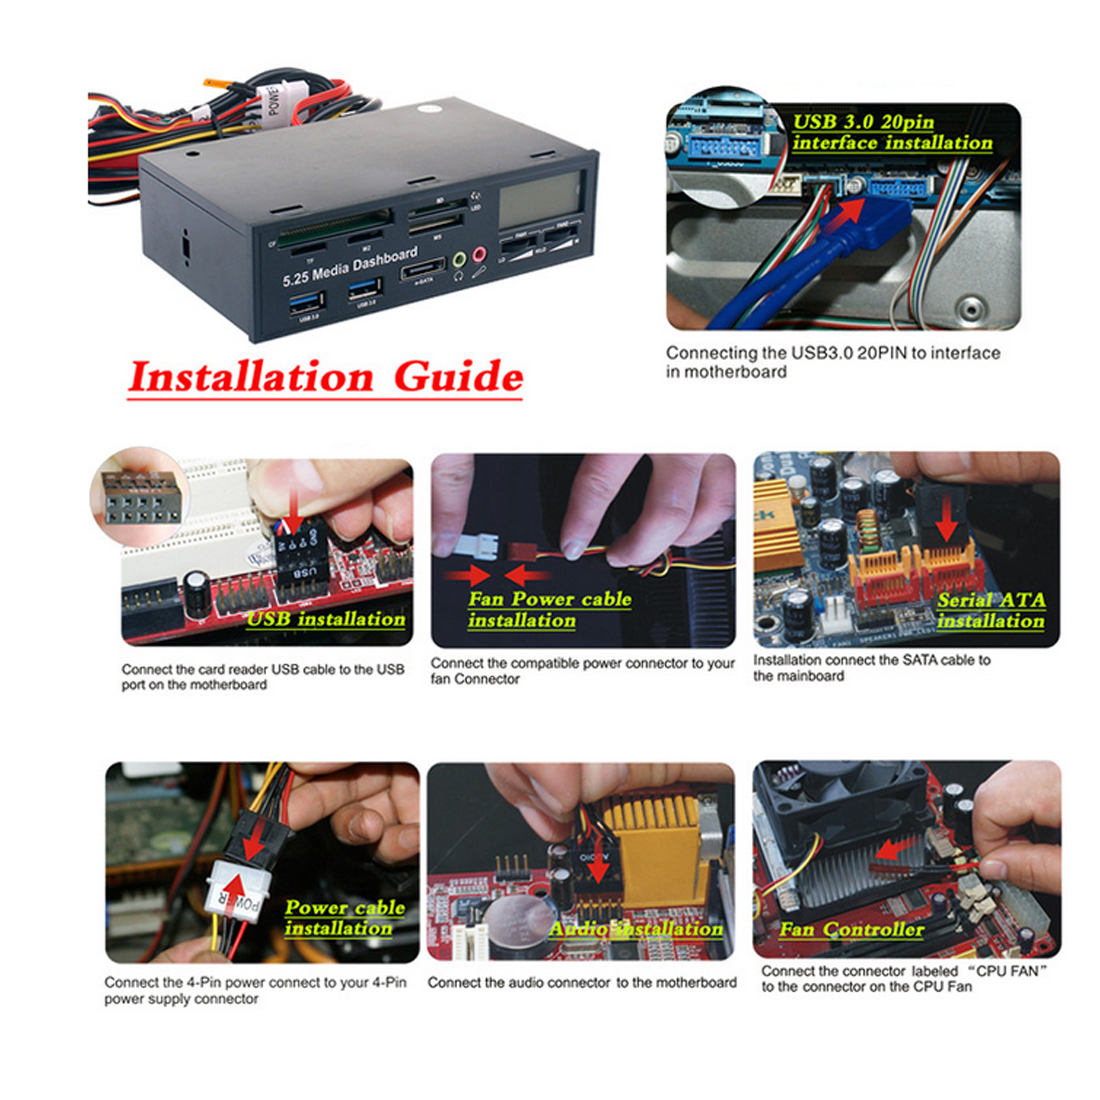 5.25 Optical Drive Front Panel USB 3.0 e SATA All in 1 PC Media Dashboard Multi function audio/temperature display Card Reader